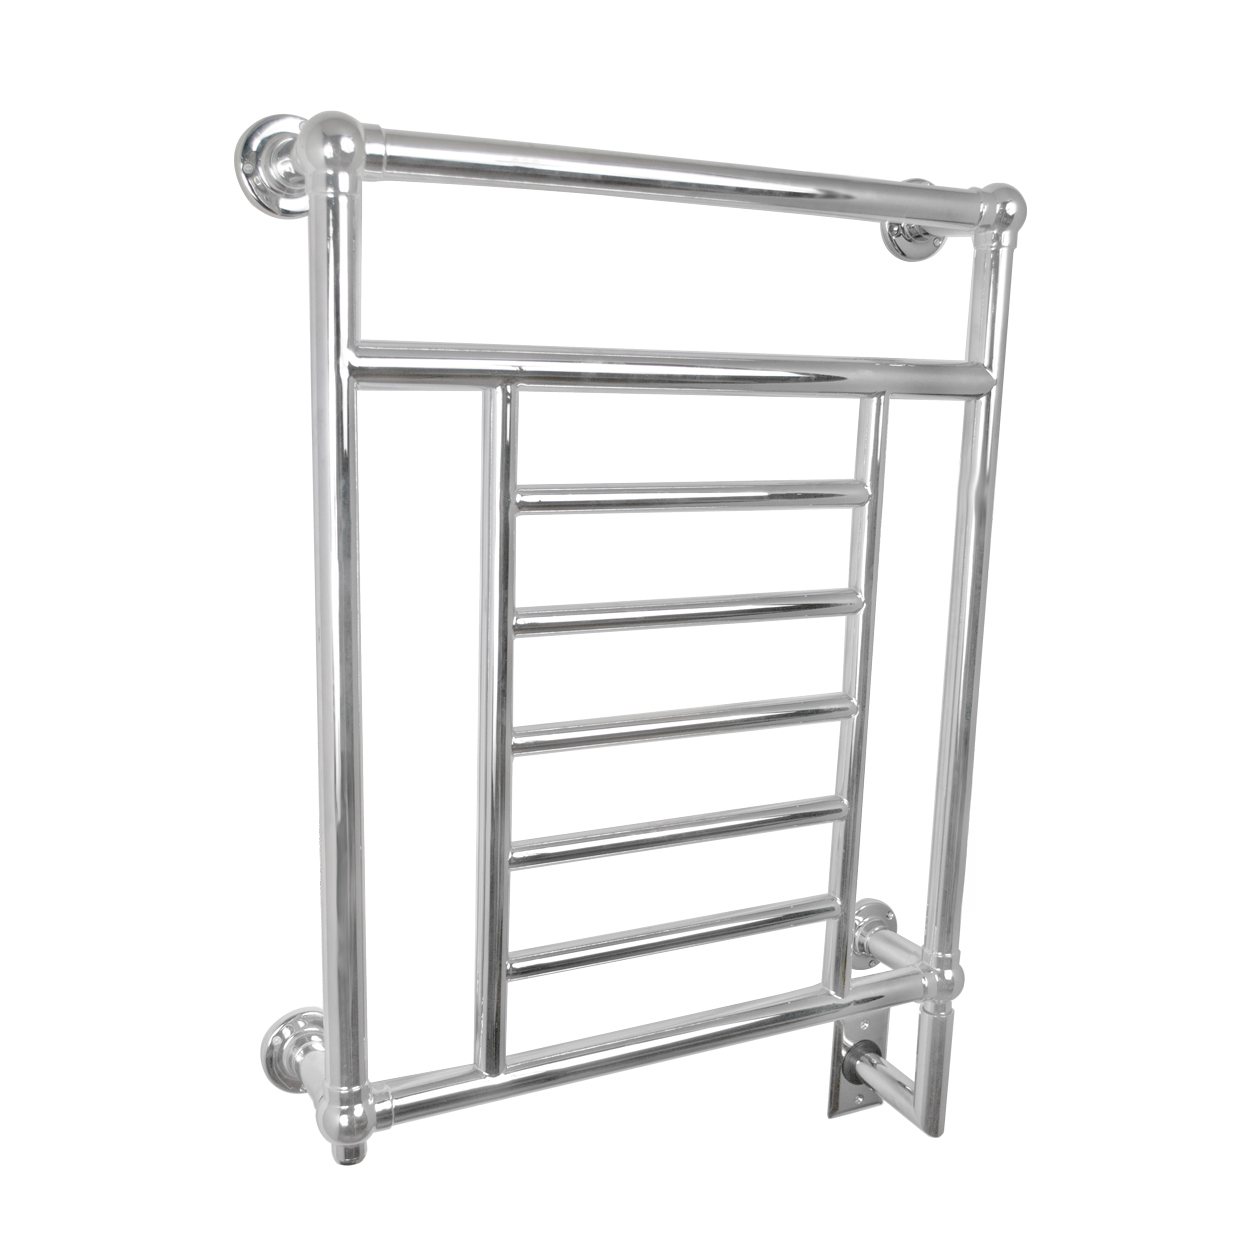 Awesome Amba Towel Warmers for Best Tower Warmer Inspiration: Amba Towel Warmers Reviews | Amba Towel Warmers | Electric Heated Towel Rack